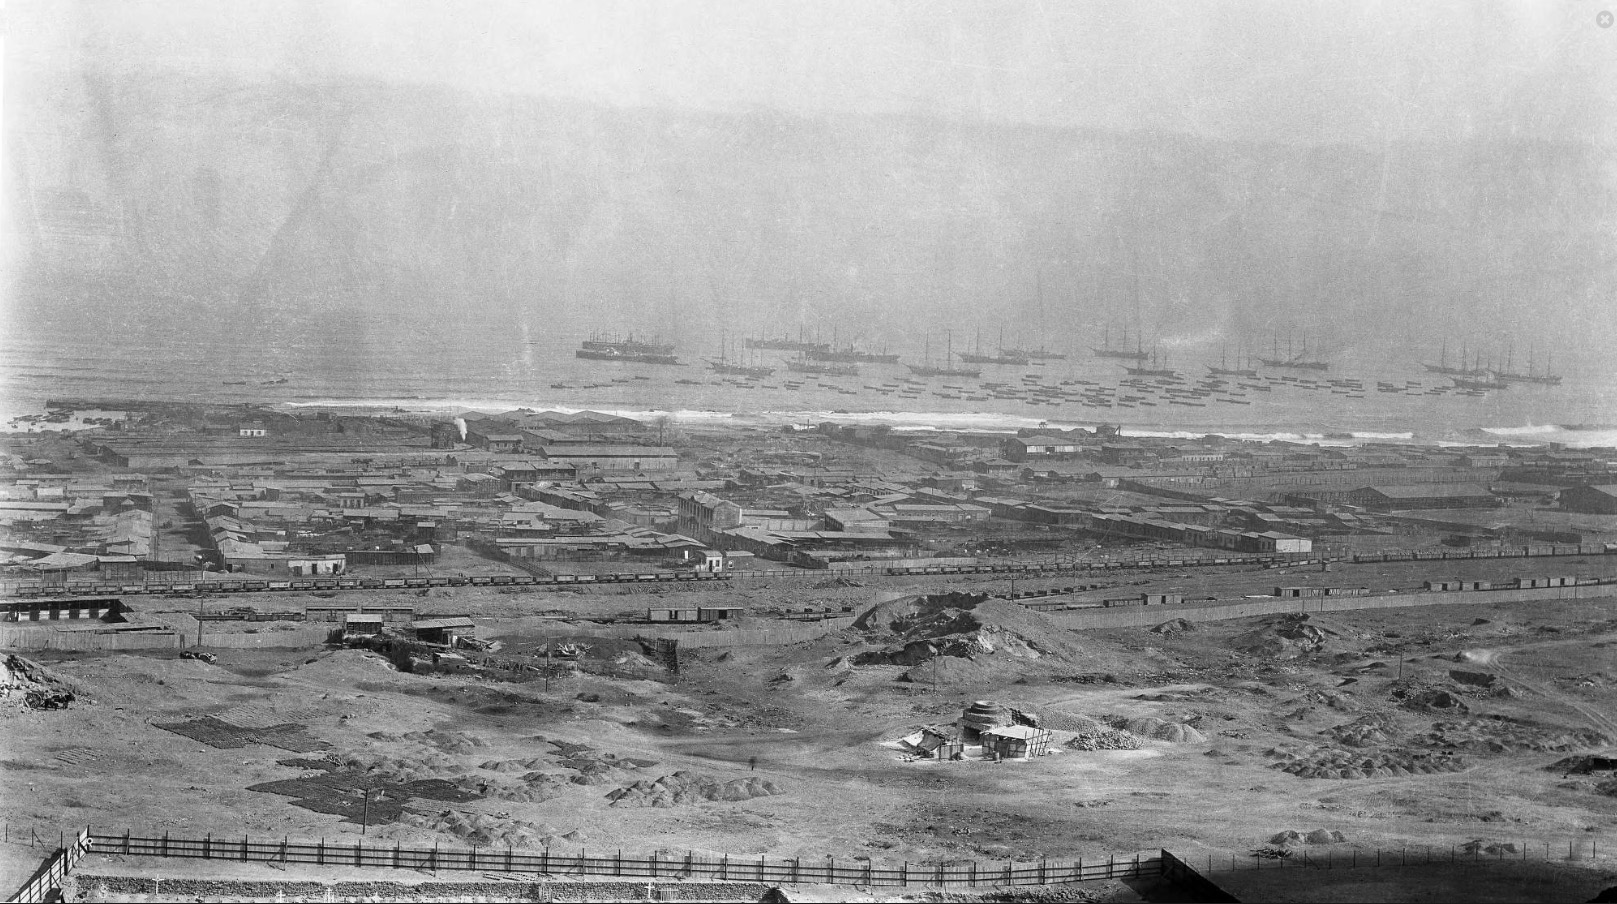 Enterreno - Fotos históricas de chile - fotos antiguas de Chile - Antofagasta en 1913